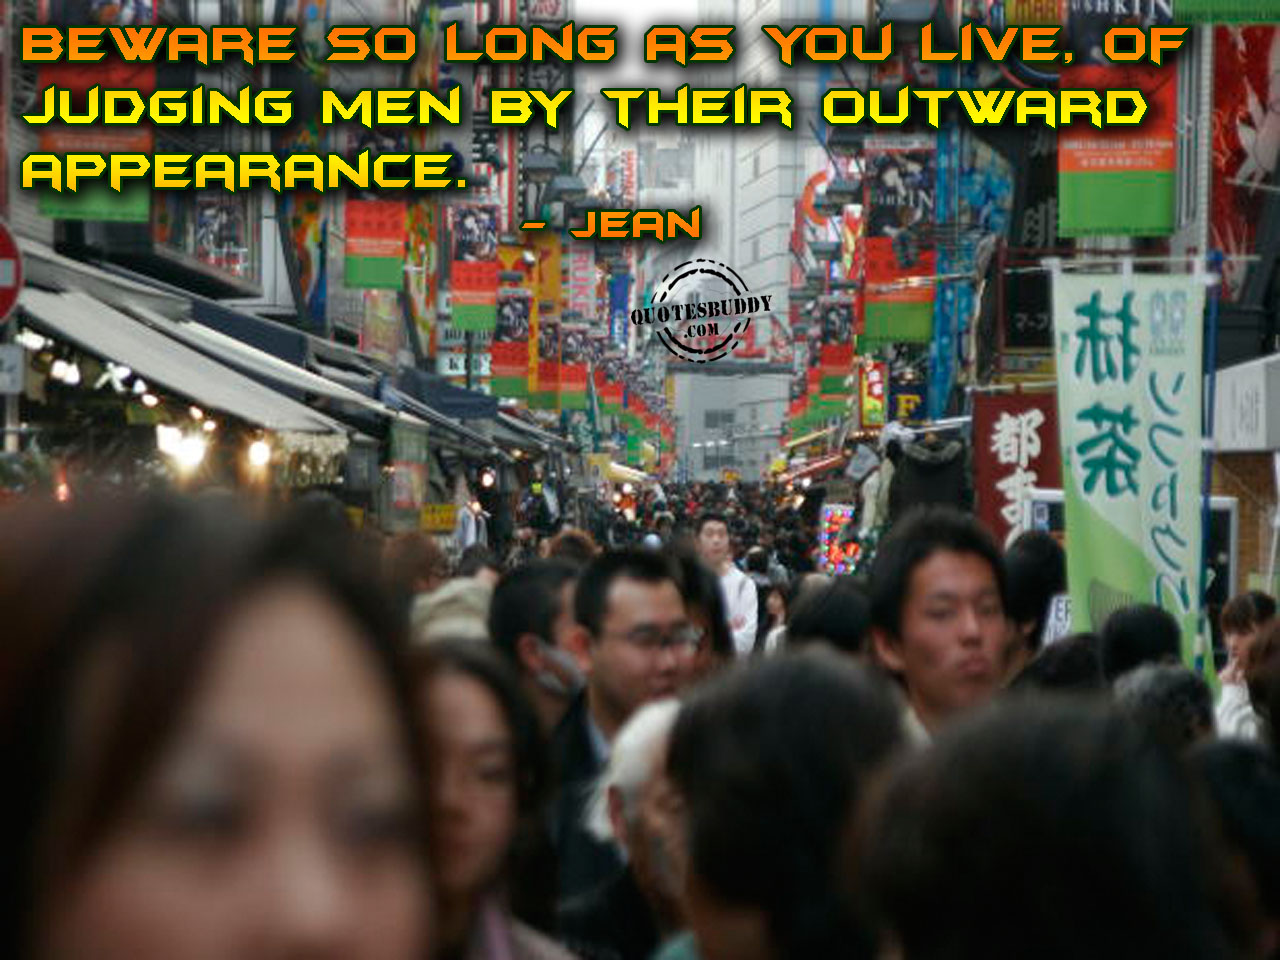 Outward Appearance quote #2